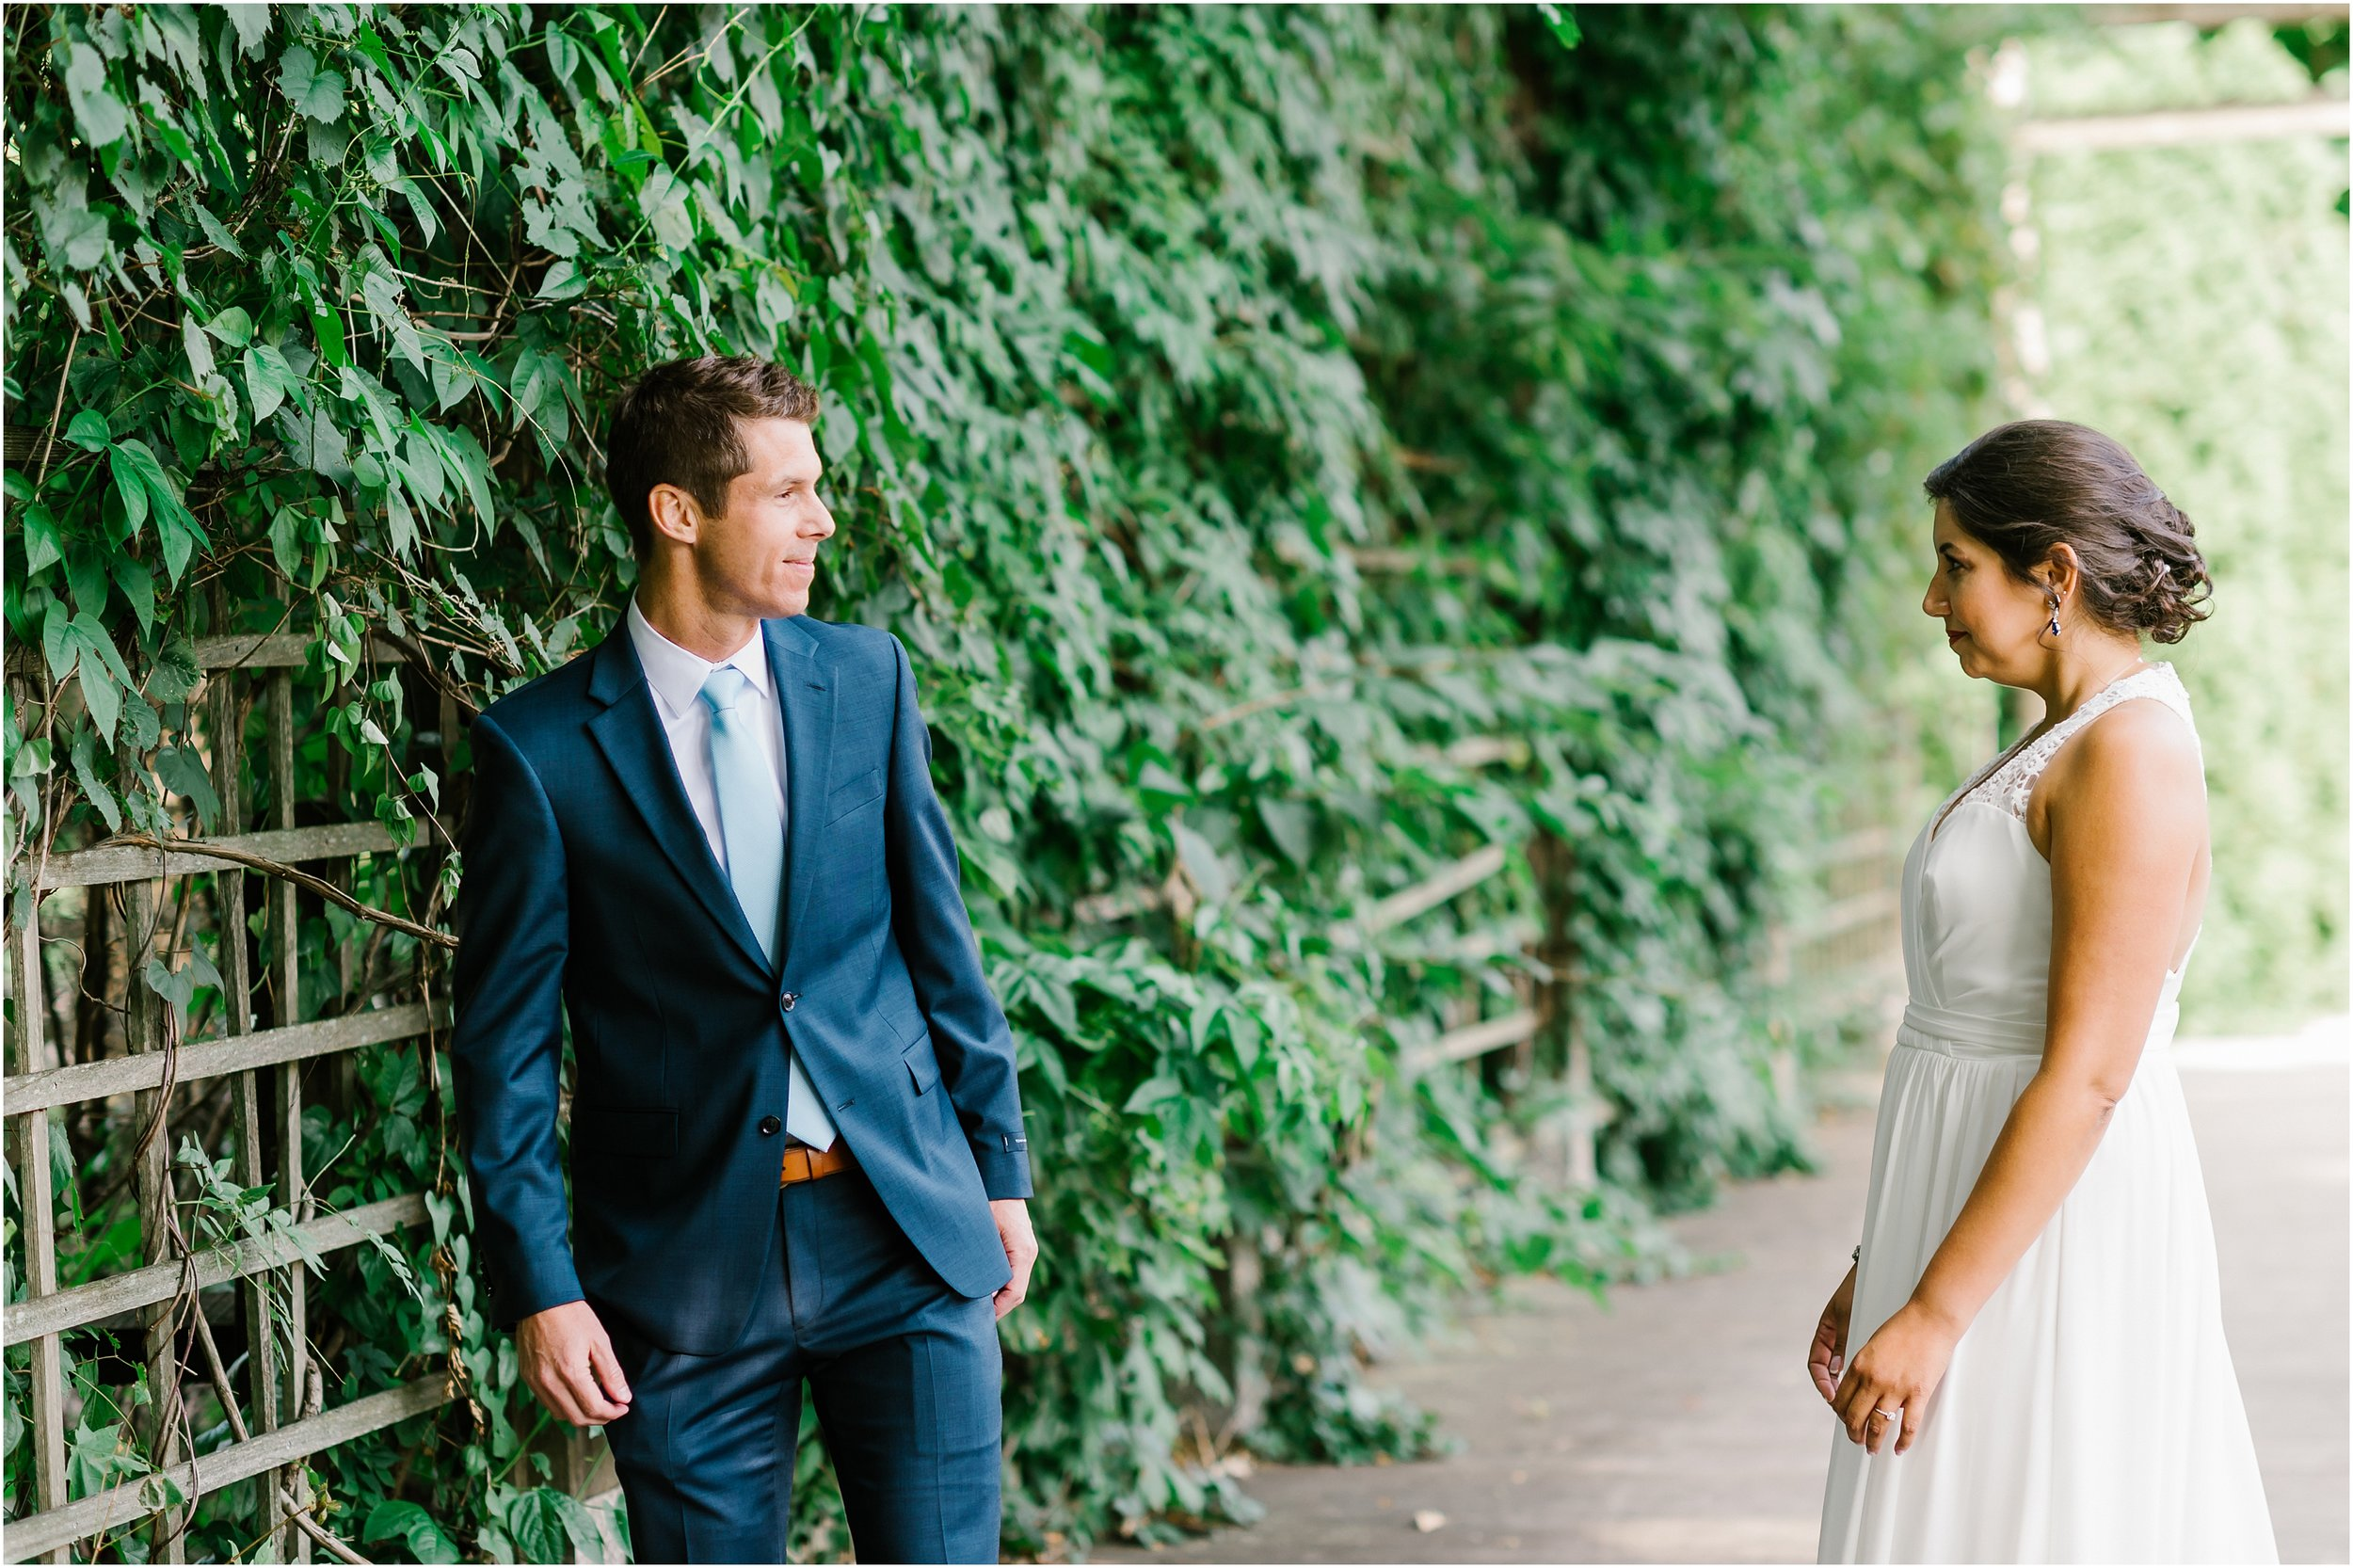 Rebecca Shehorn Photography Indianapolis Wedding Photographer Just Pop In Wedding_0626.jpg